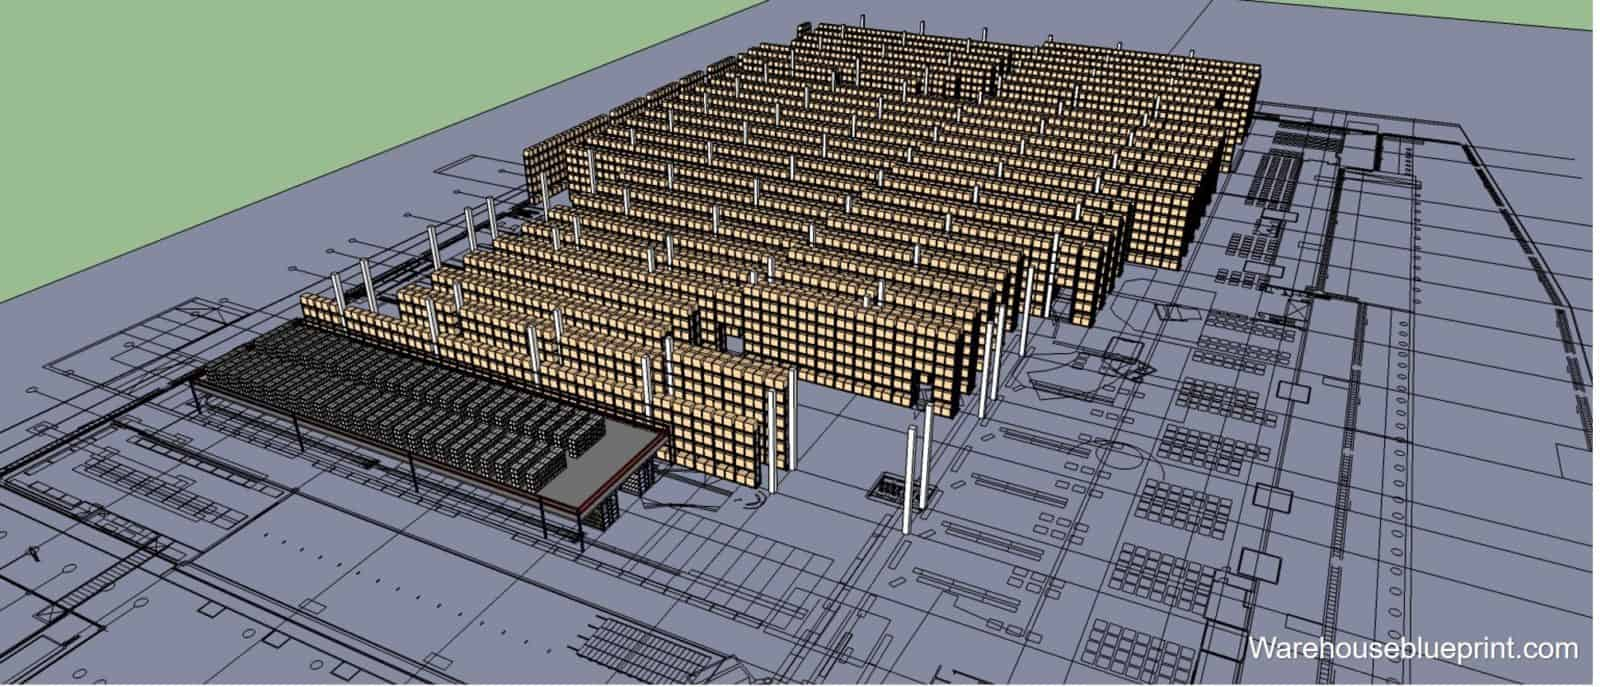 How to draw a warehouse layout warehouseblueprint for Draw layout warehouse